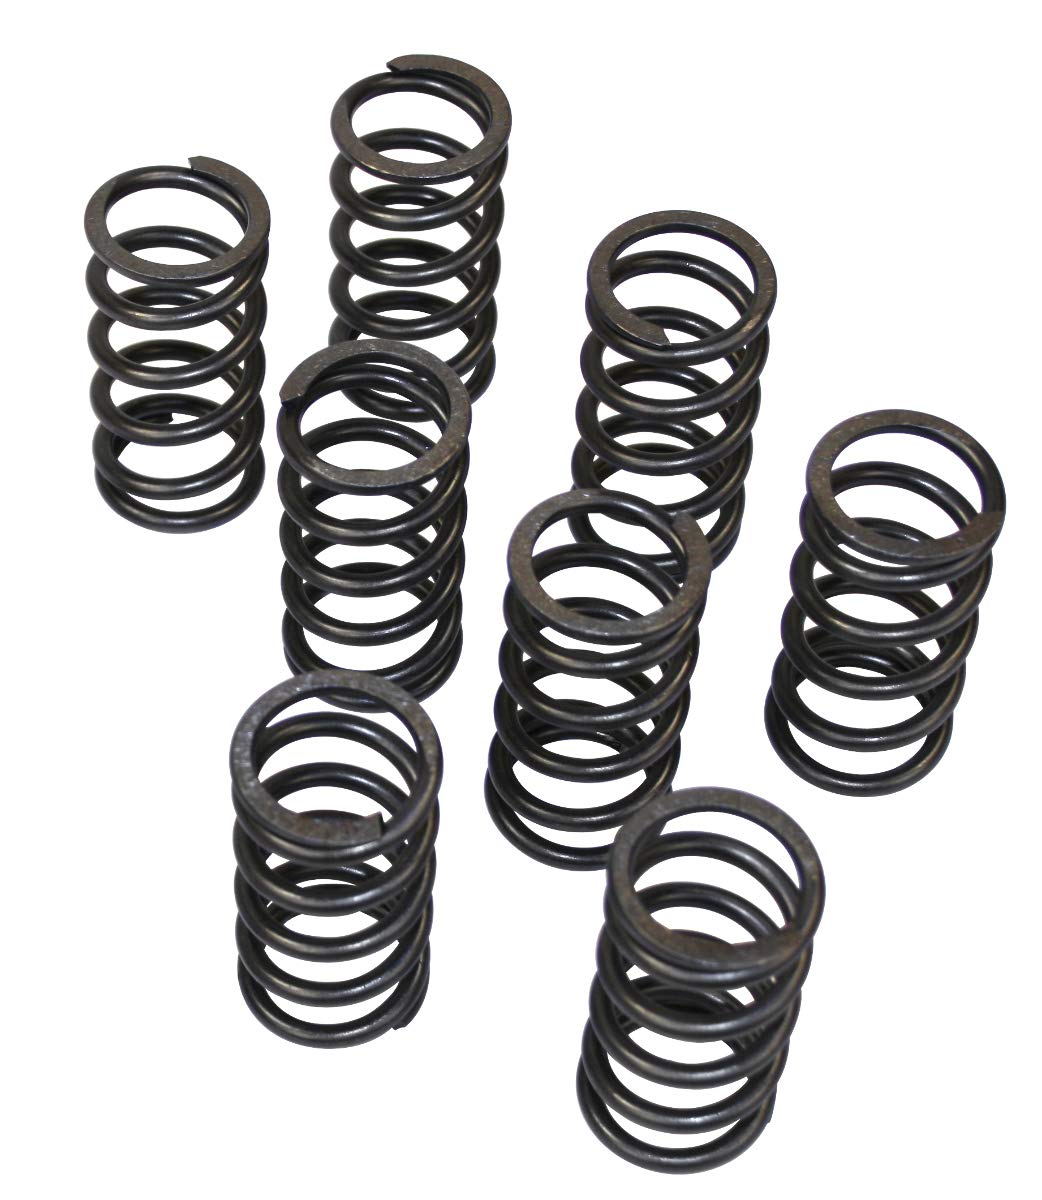 Single Valve Springs, For Aircooled VW, 8 Springs, Compatible with Dune Buggy